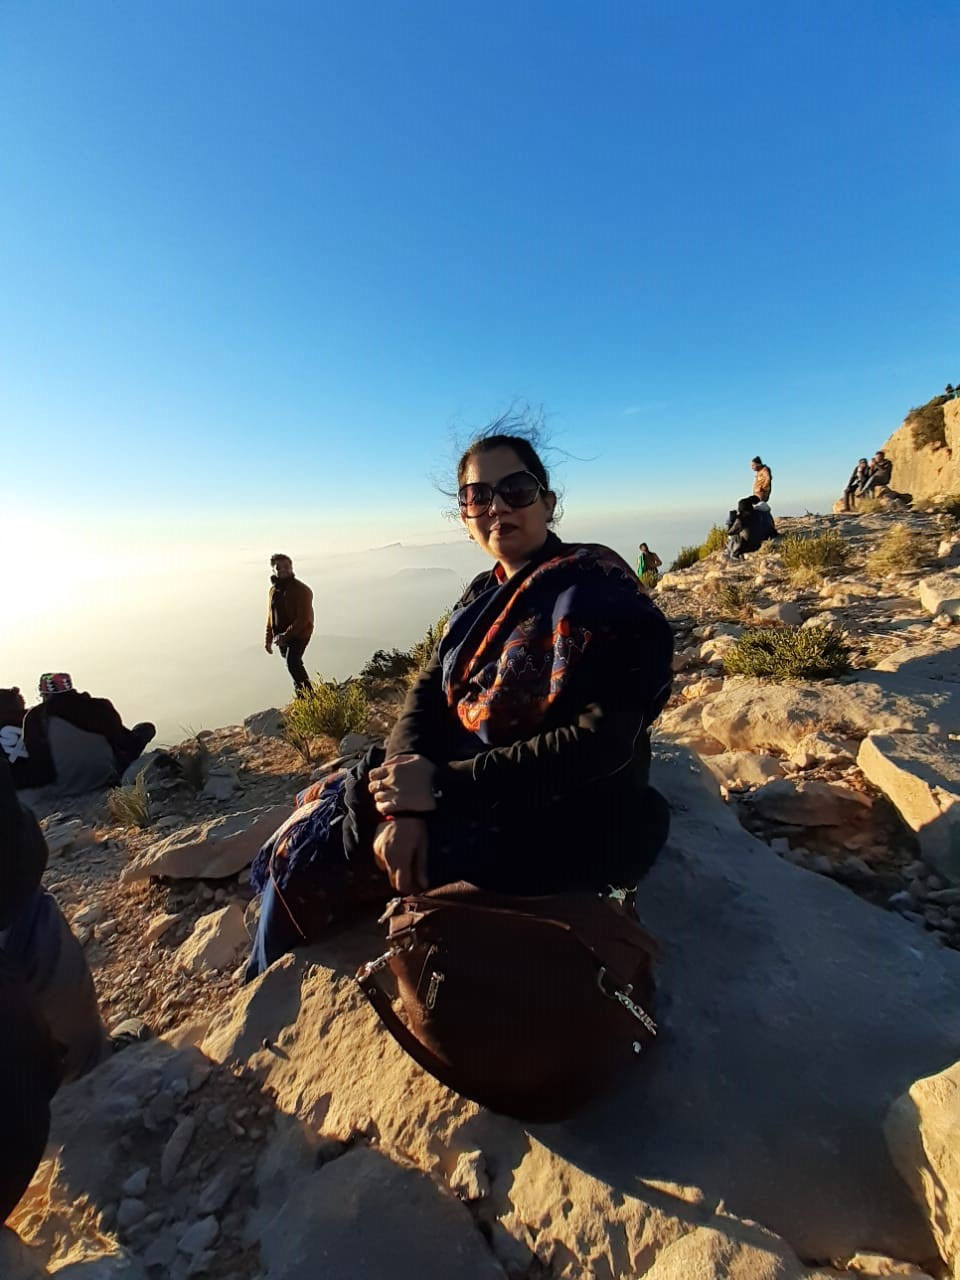 Erum Imran is enjoying the beautiful view at Gorakh Hills